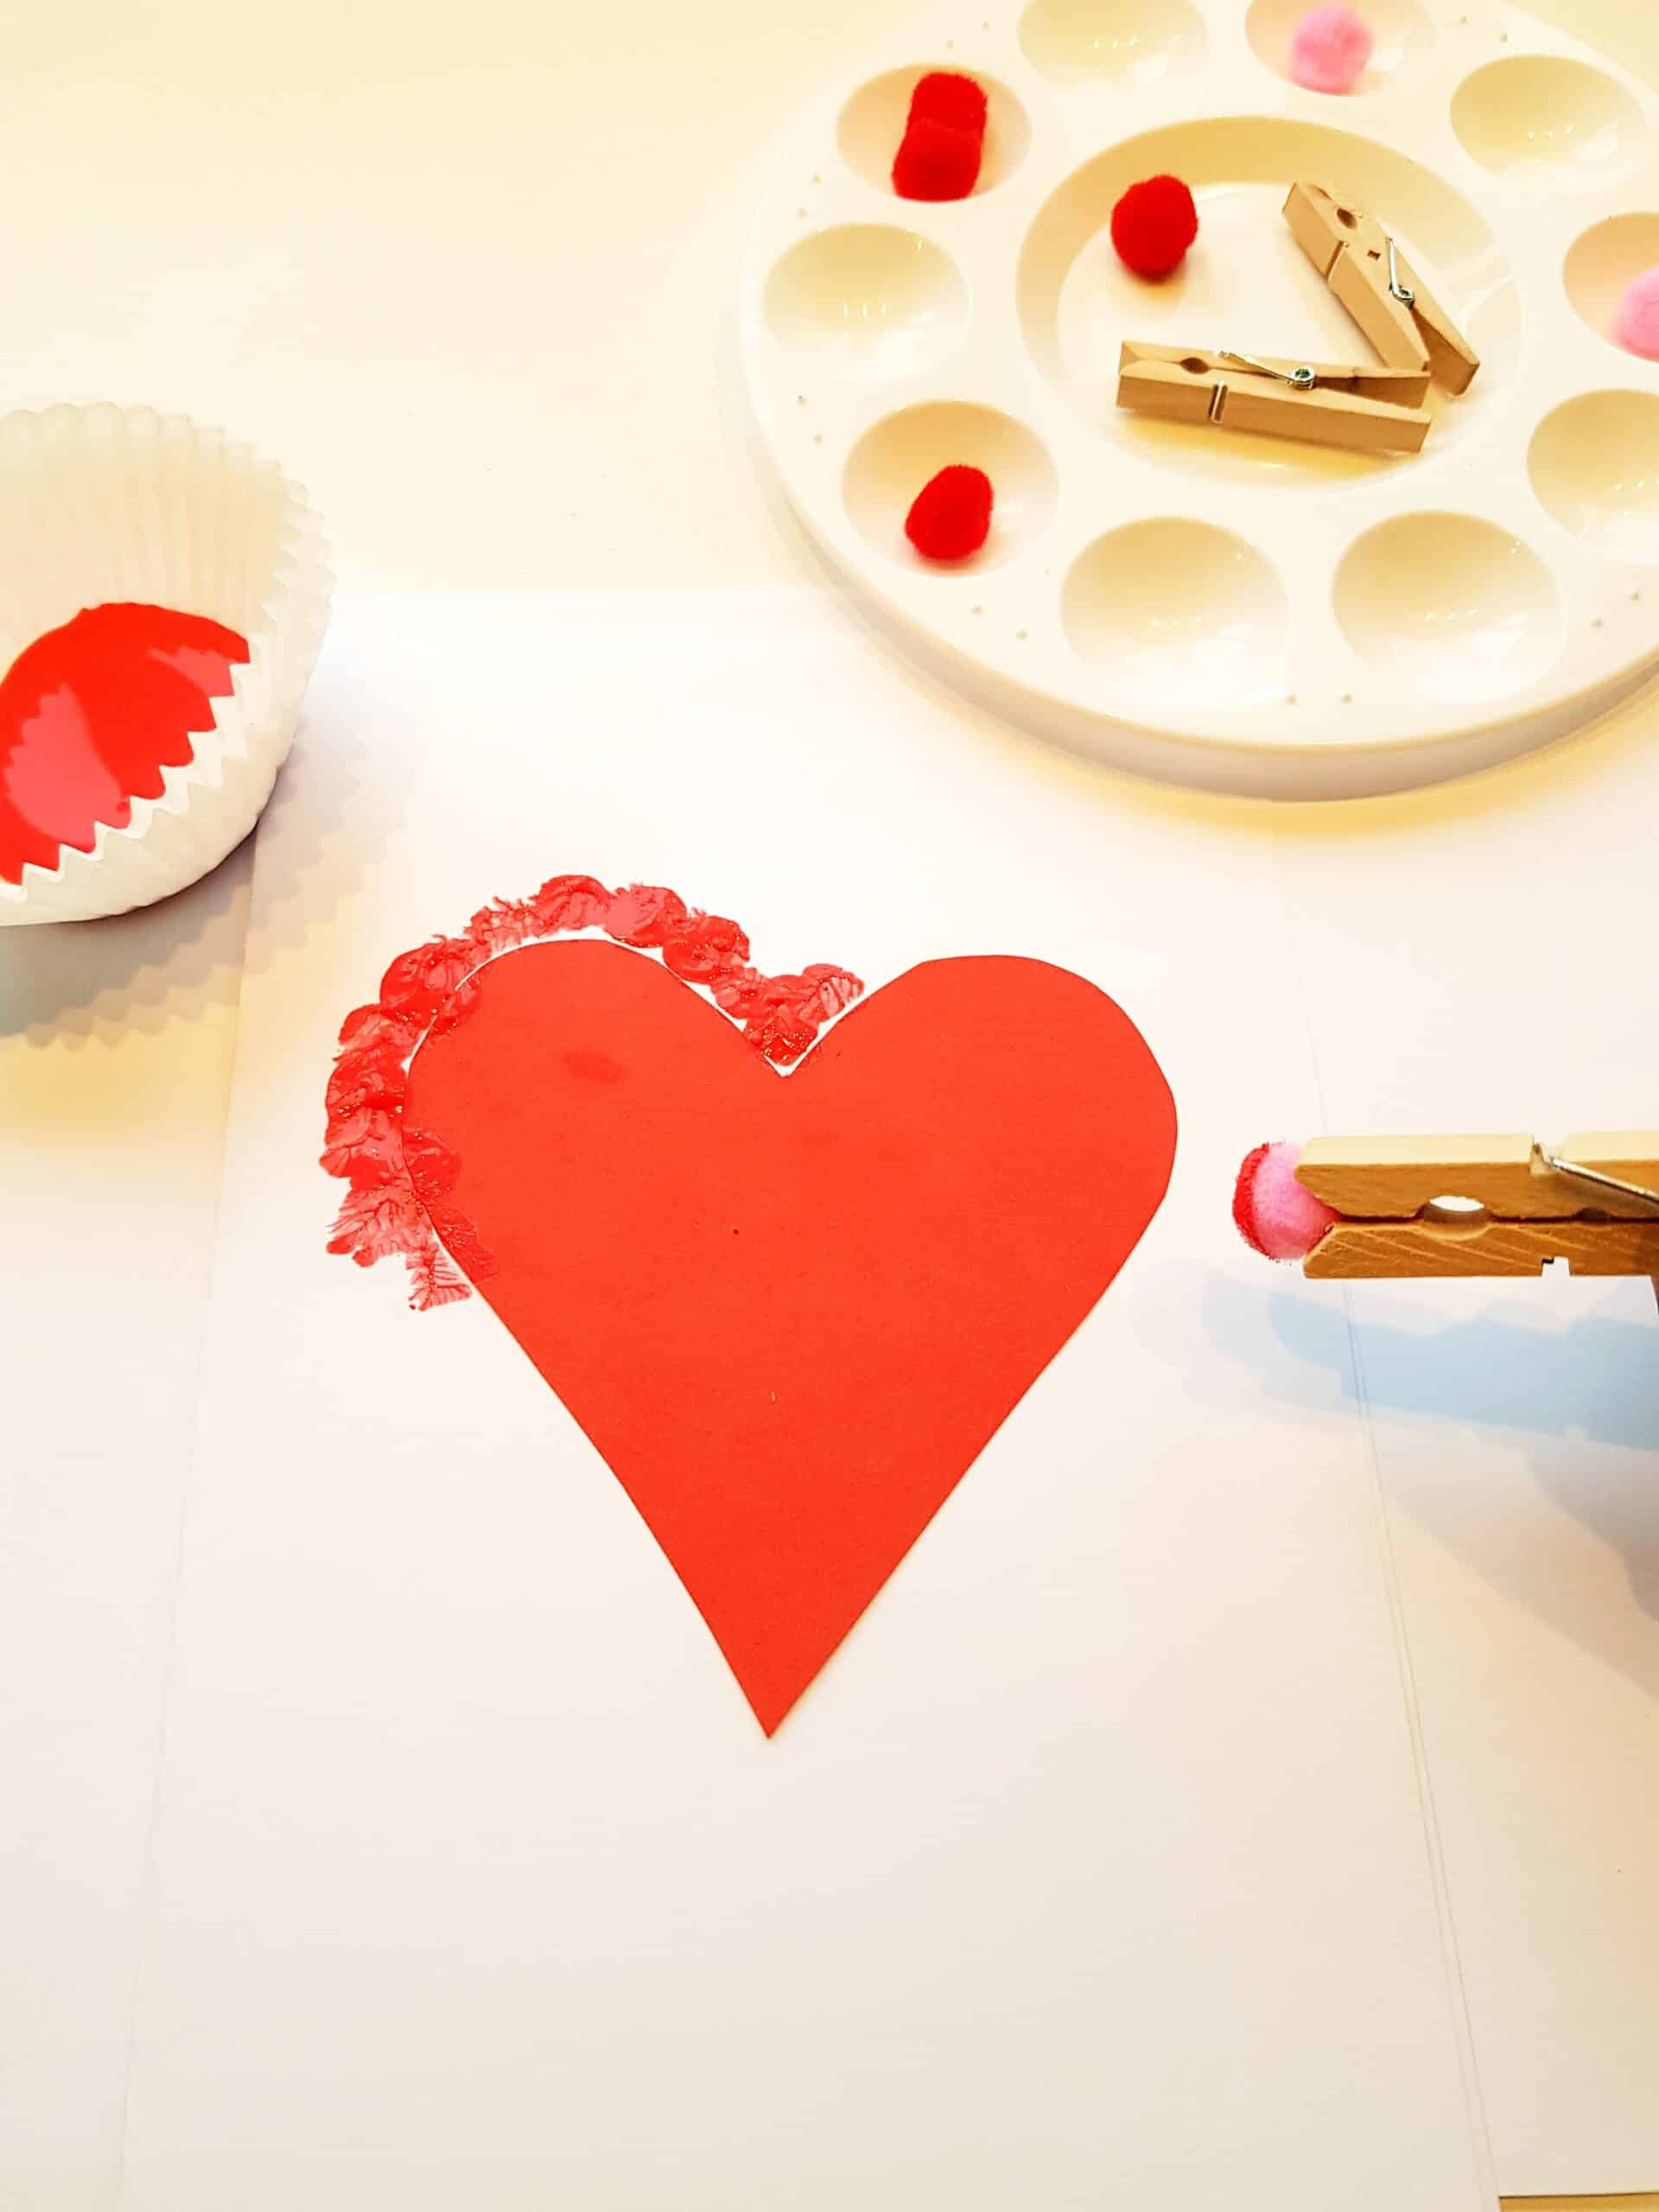 cut heart and place on your card